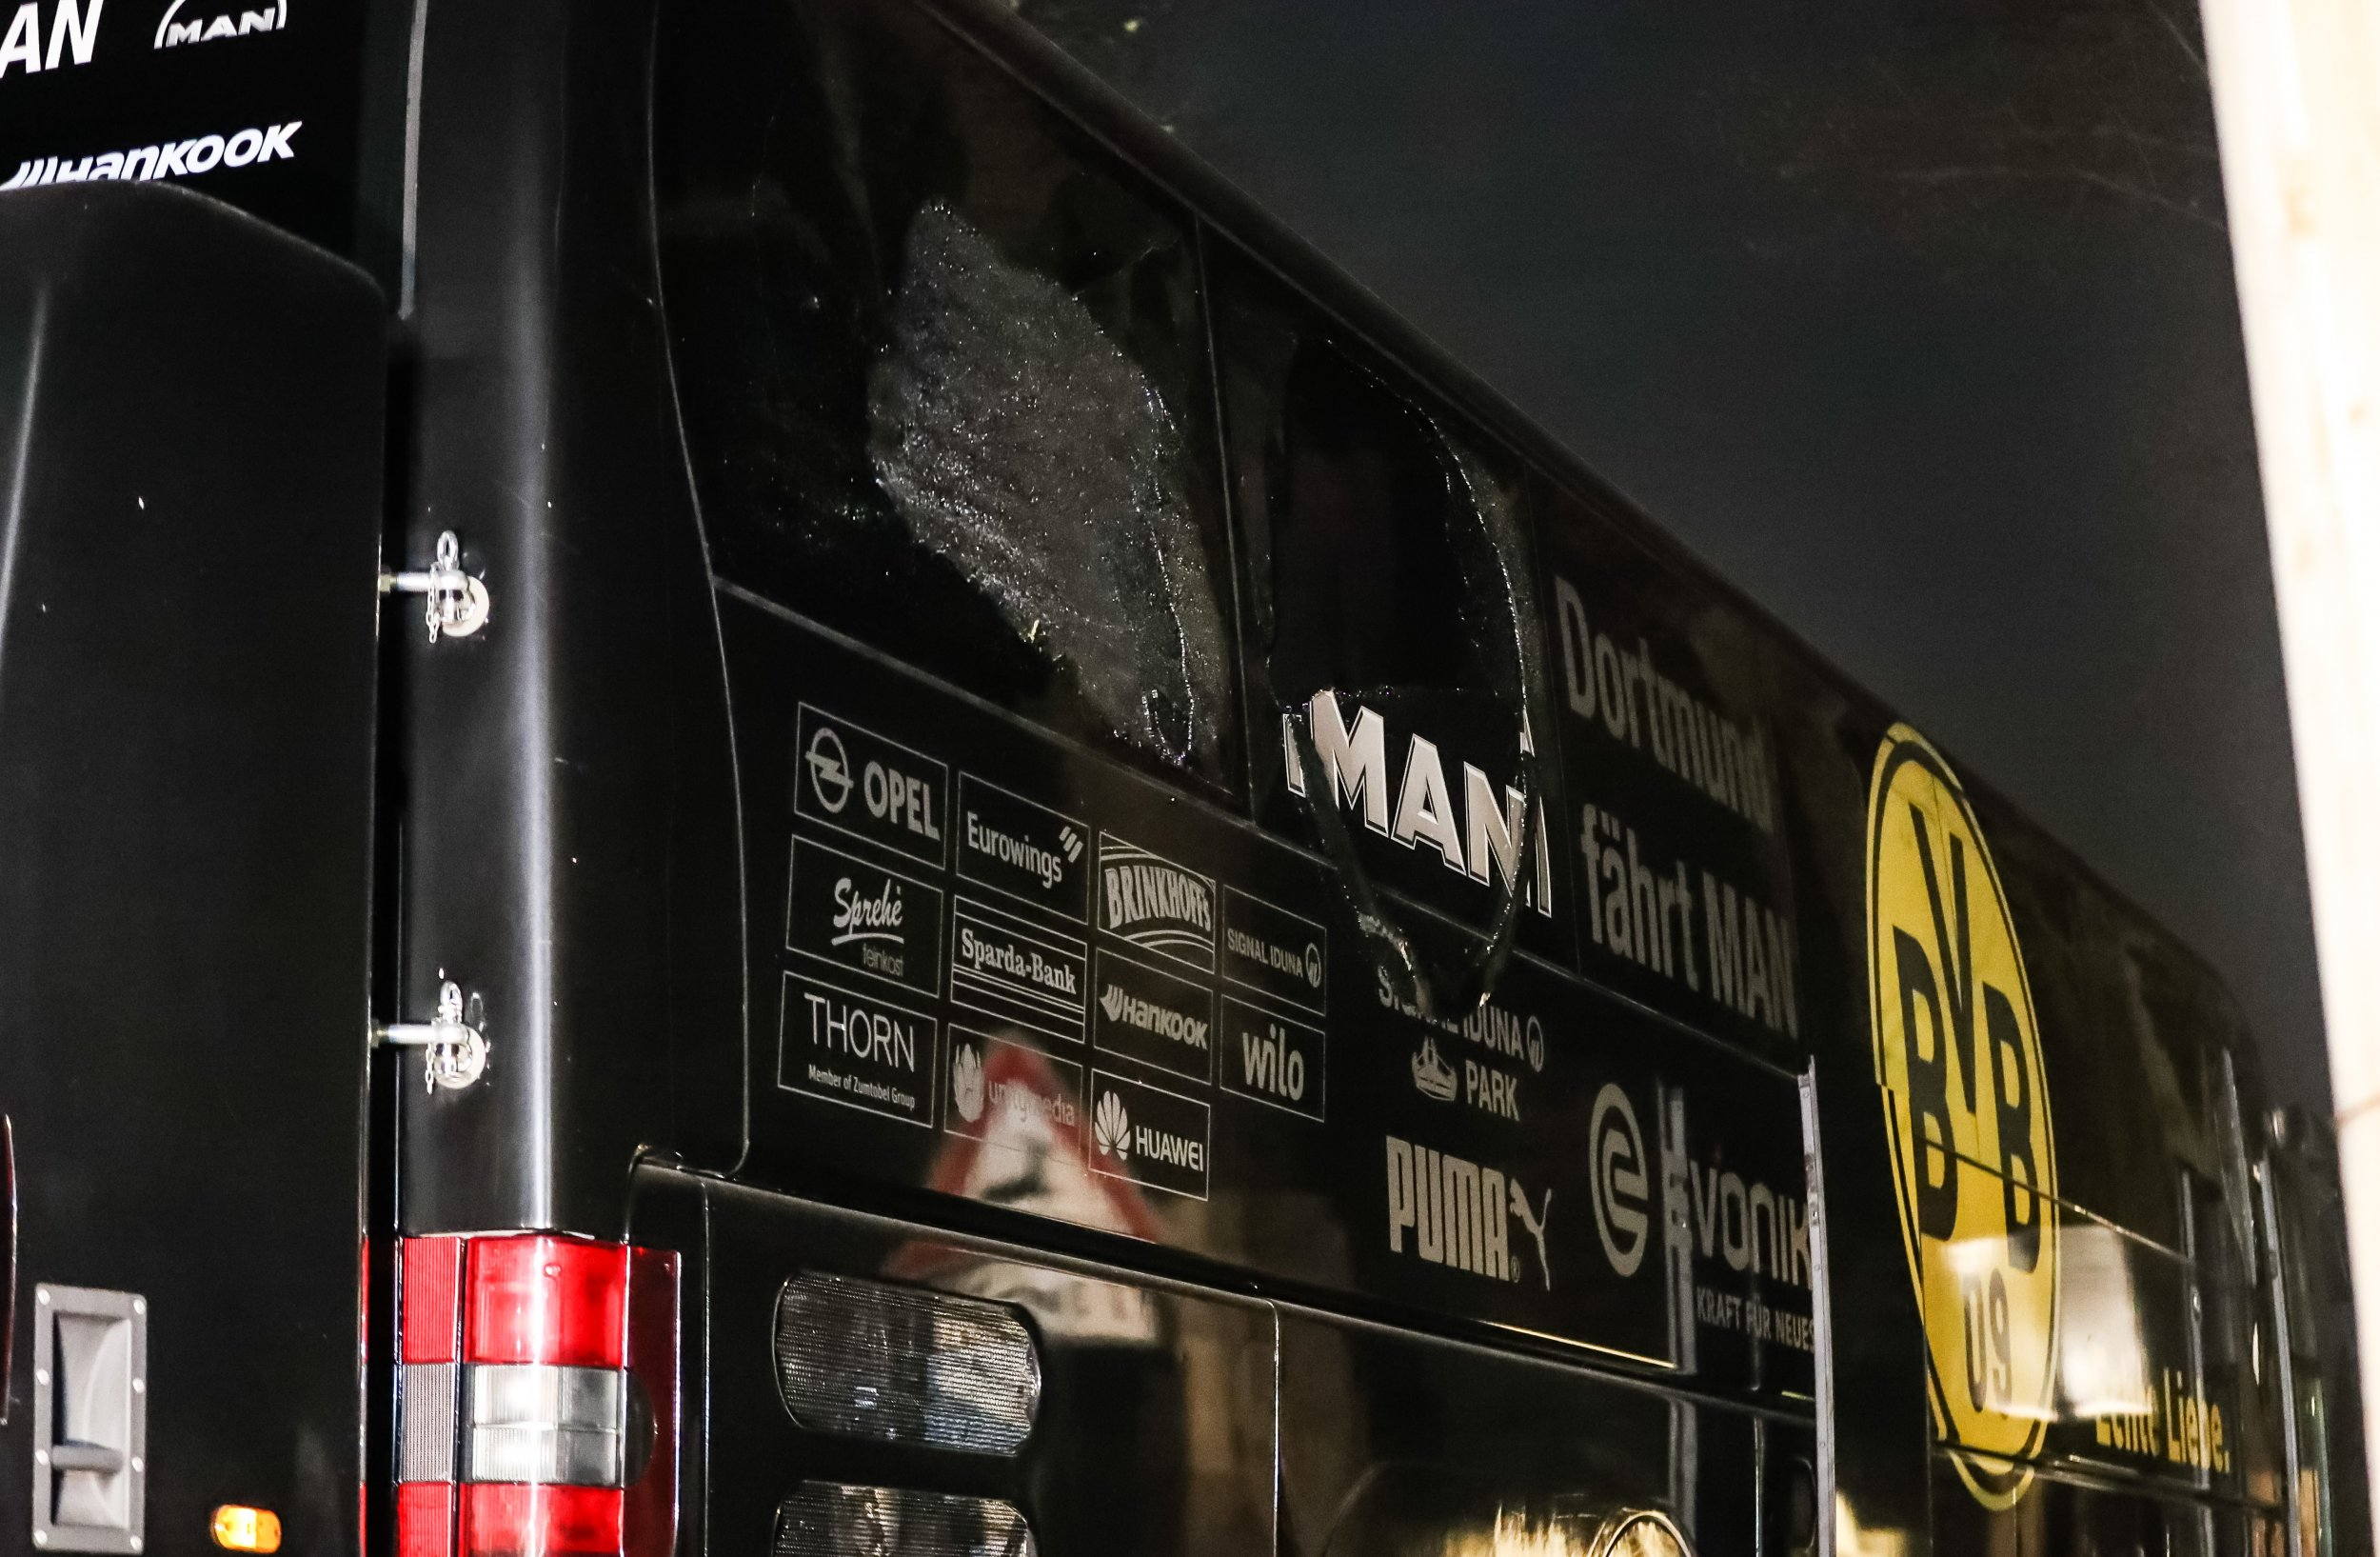 The Borussia Dortmund team bus, damaged by an explosion, in Dortmund, Germany, April 12.